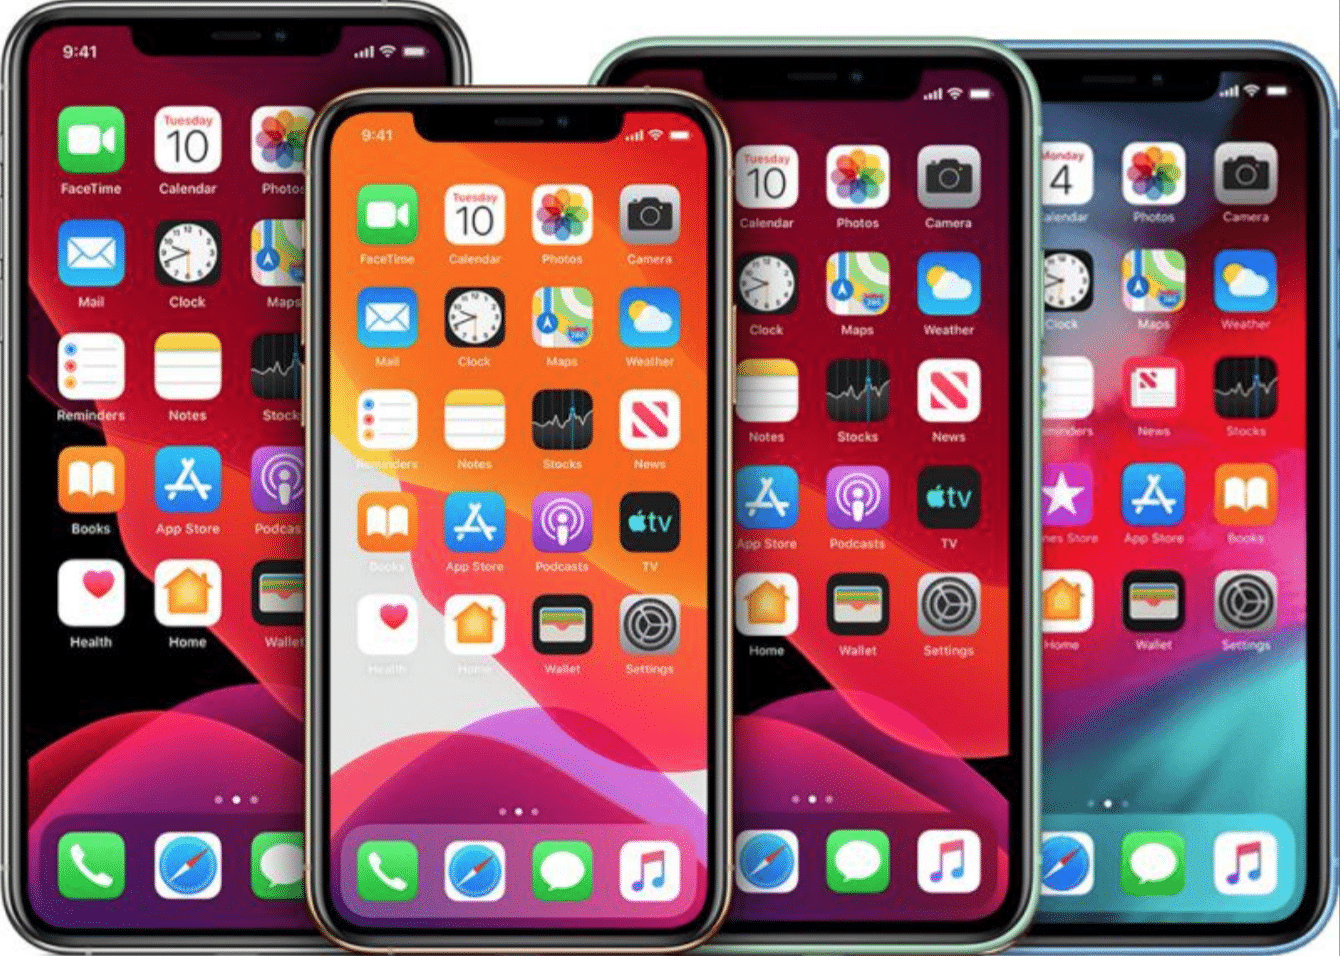 Apple's 5G iPhones Launch Might Delay Due to Apple's Travel Restrictions